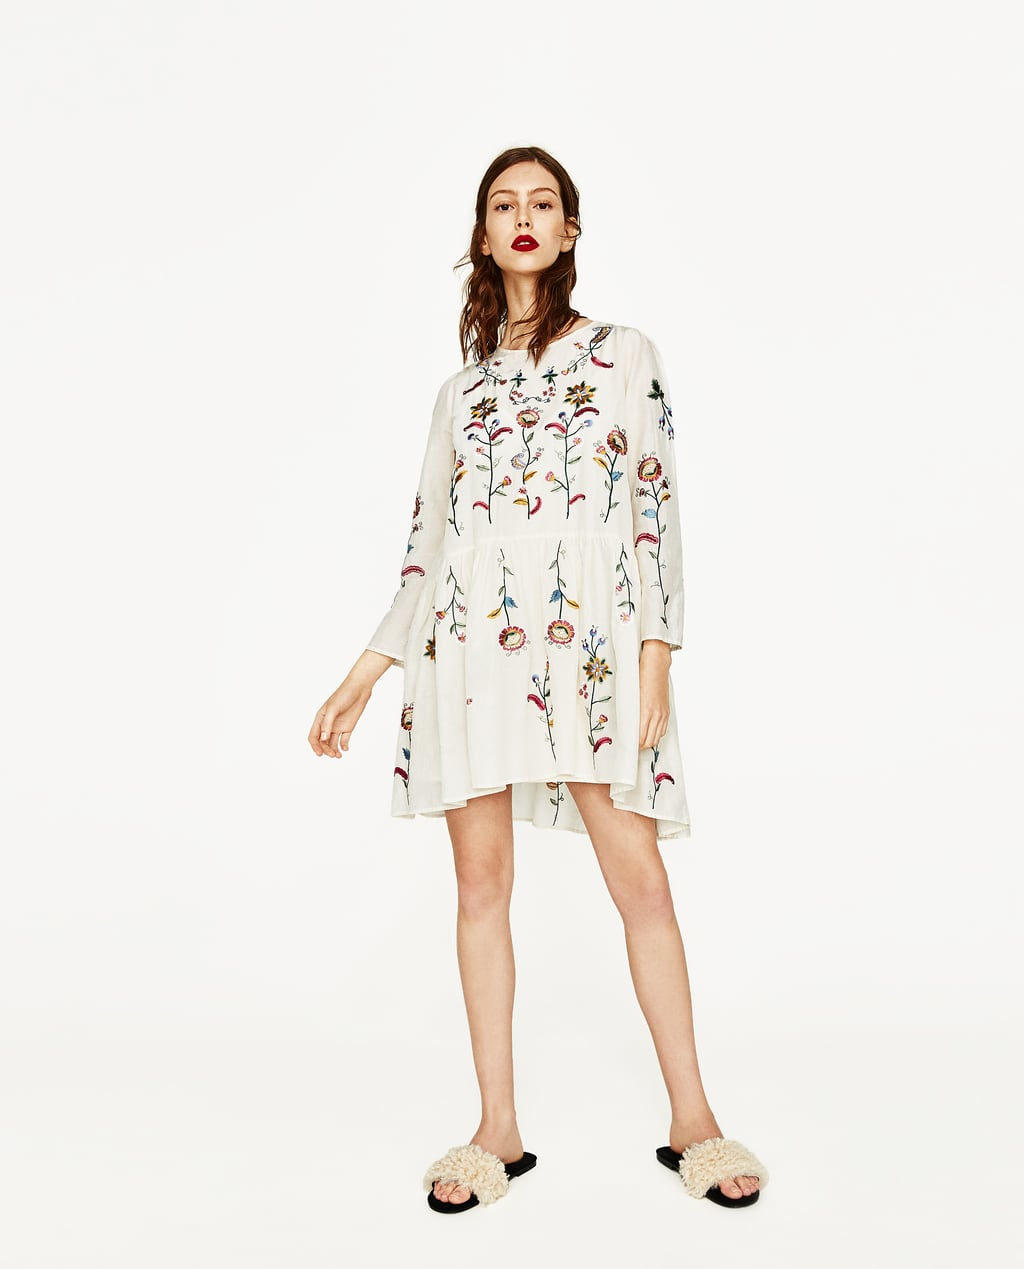 White dress at zara - Image 1 Of Silk Dress With Flowers Embroidery From Zara